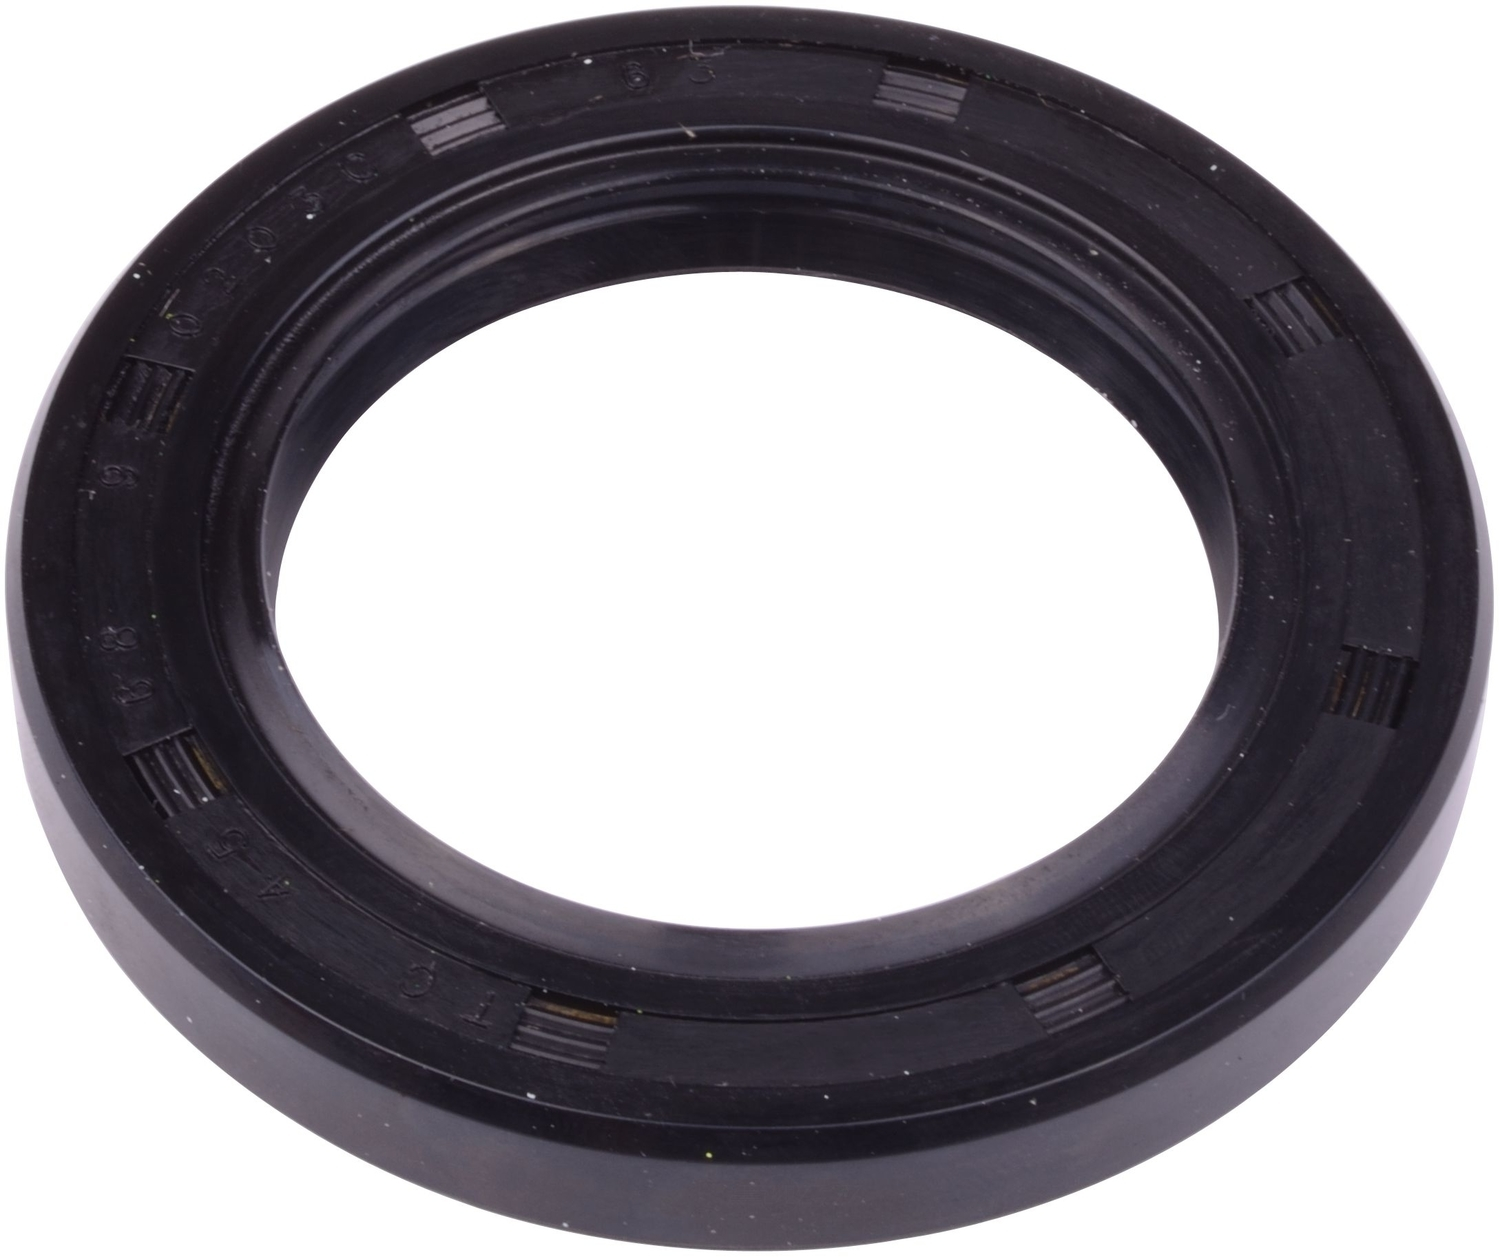 SKF (CHICAGO RAWHIDE) - Auto Trans Output Shaft Seal - SKF 17758